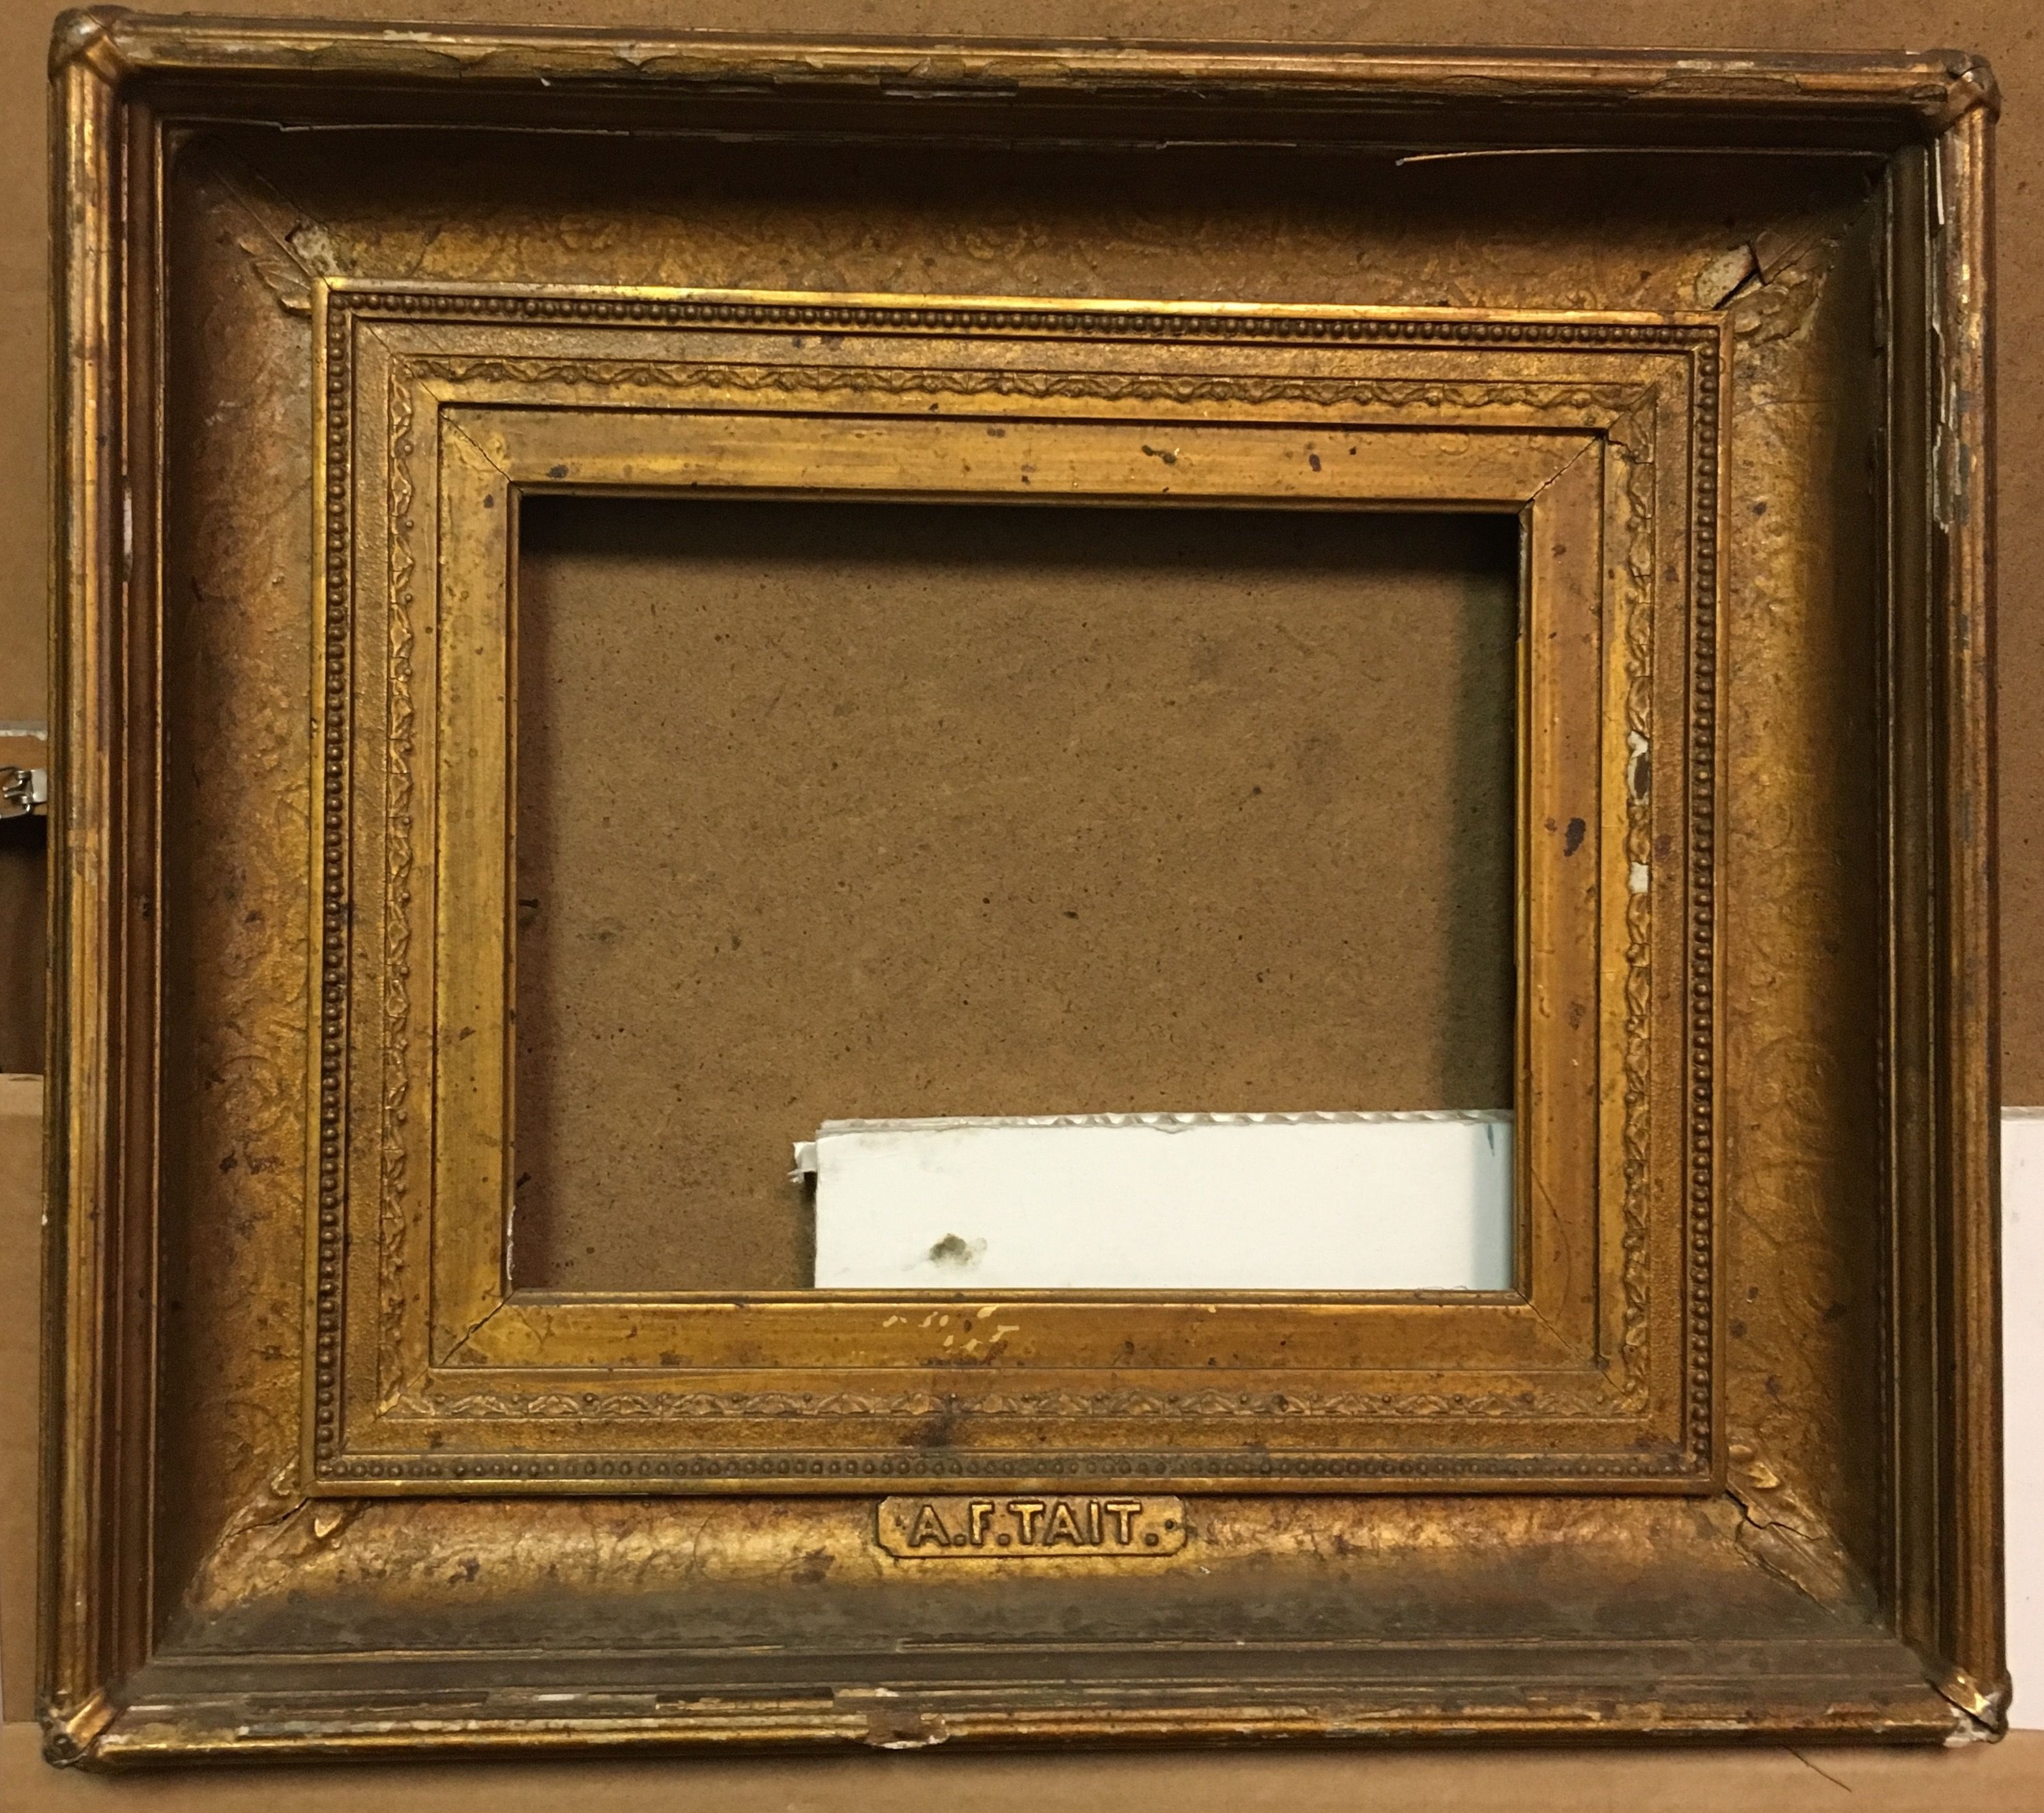 Frame with name plate af tait which appears to be carved and frame with name plate af tait which appears to be carved and leafed with jeuxipadfo Images